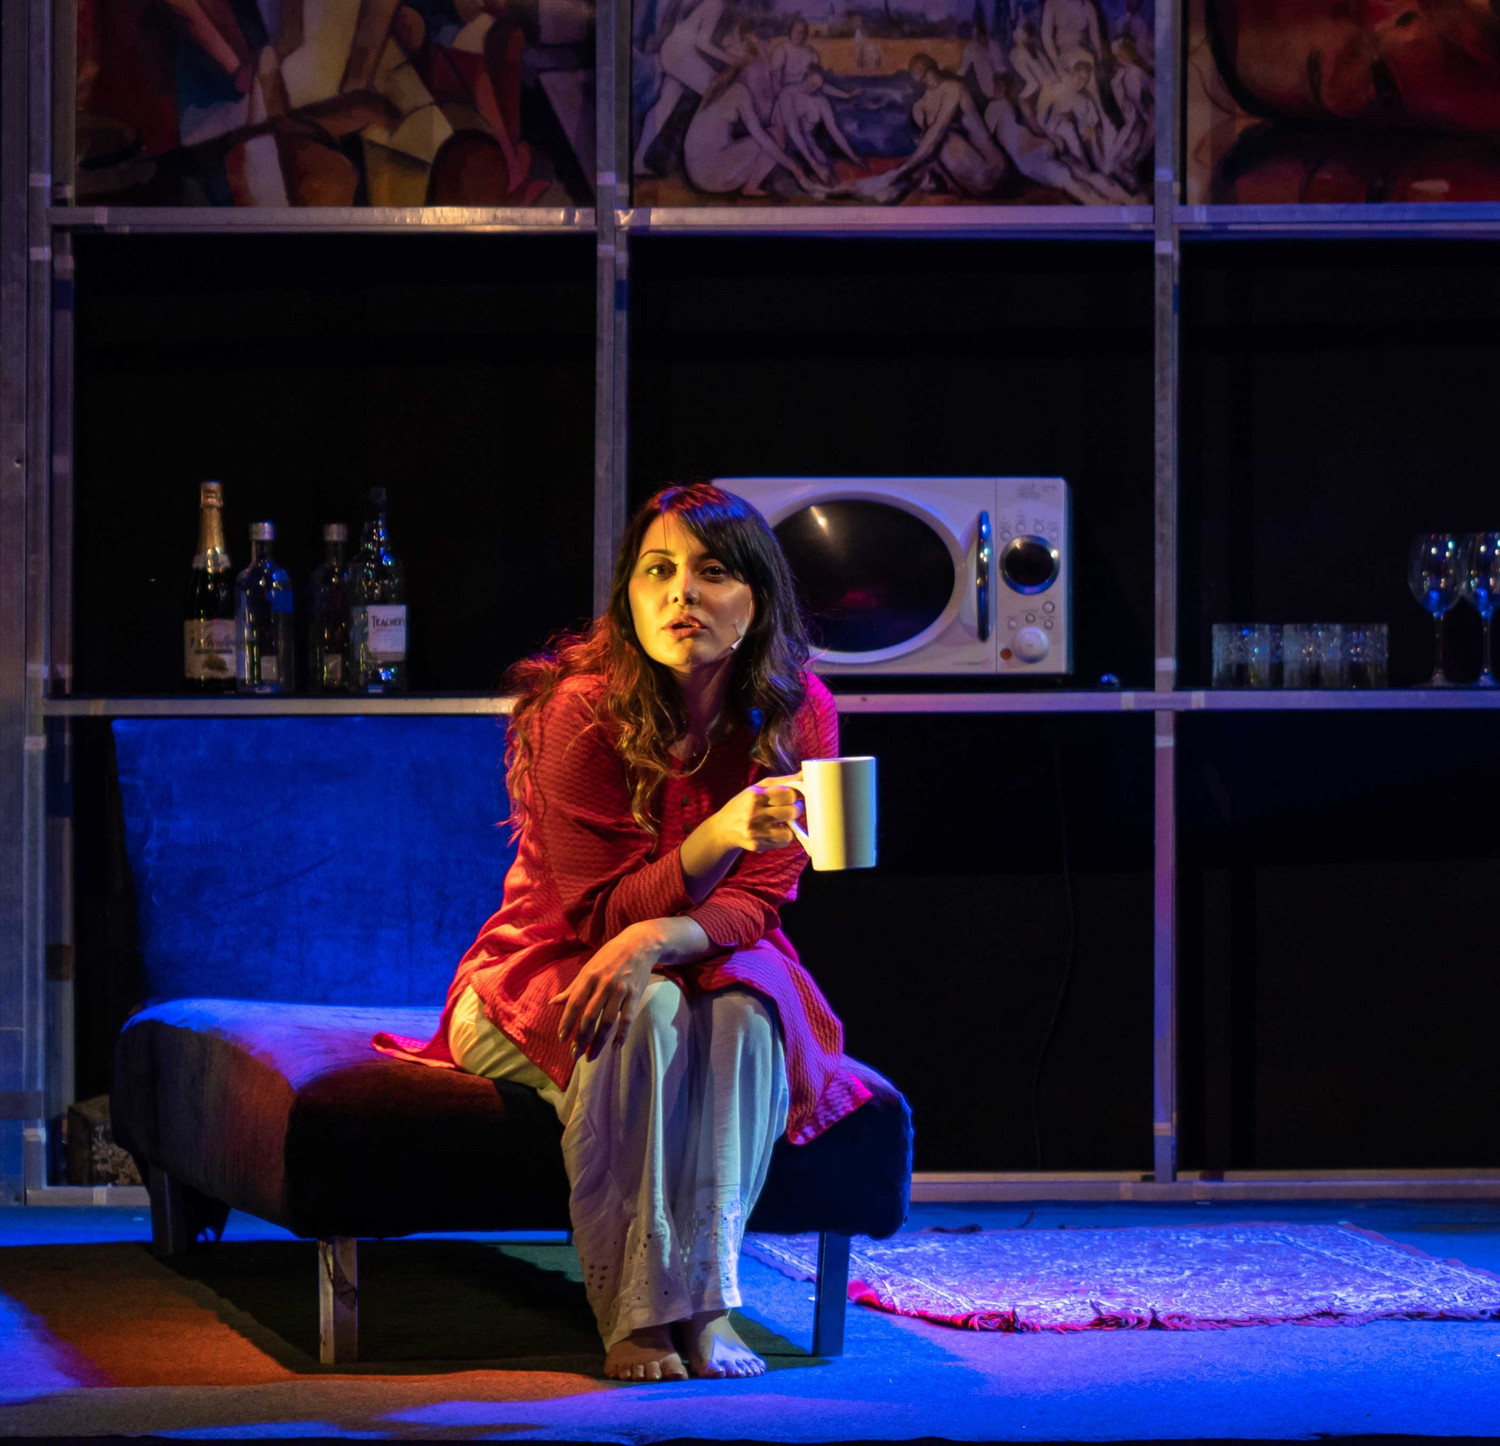 BWW Interview: BOLLYWOOD STAR MINISSHA LAMBA On Her Theatre Debut